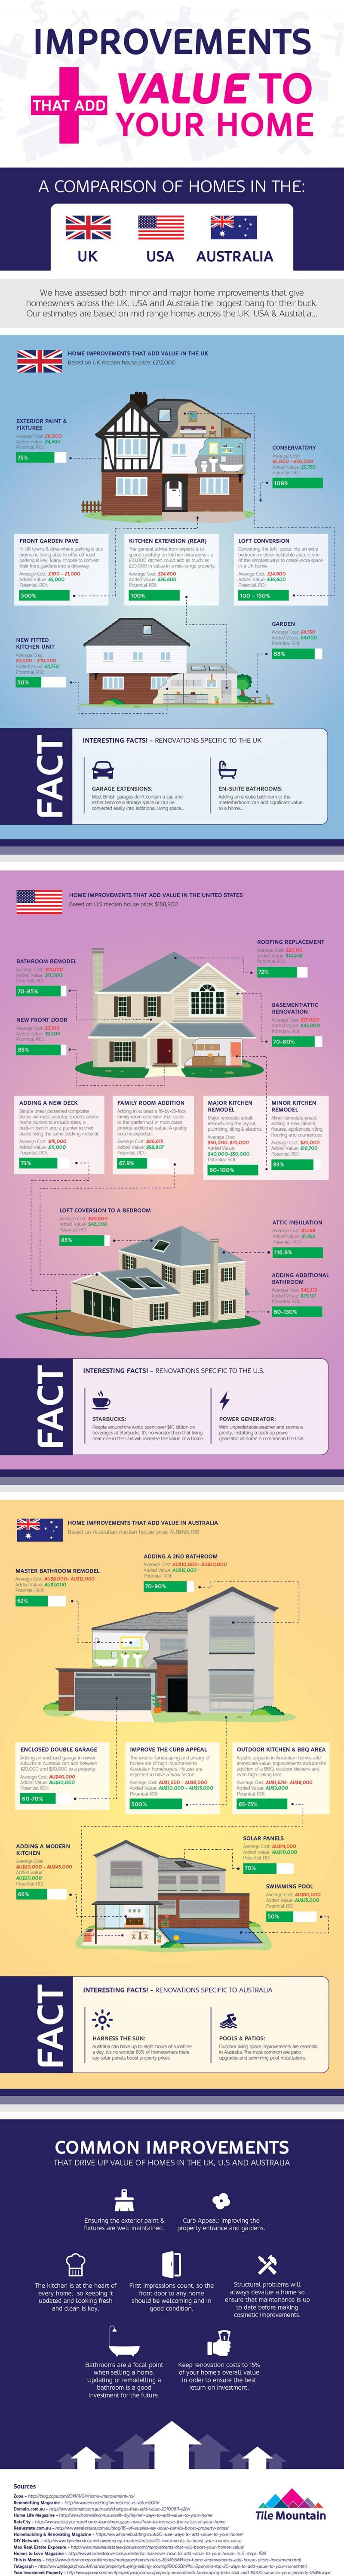 home-improvements-that-add-value-infographic-1000px-1